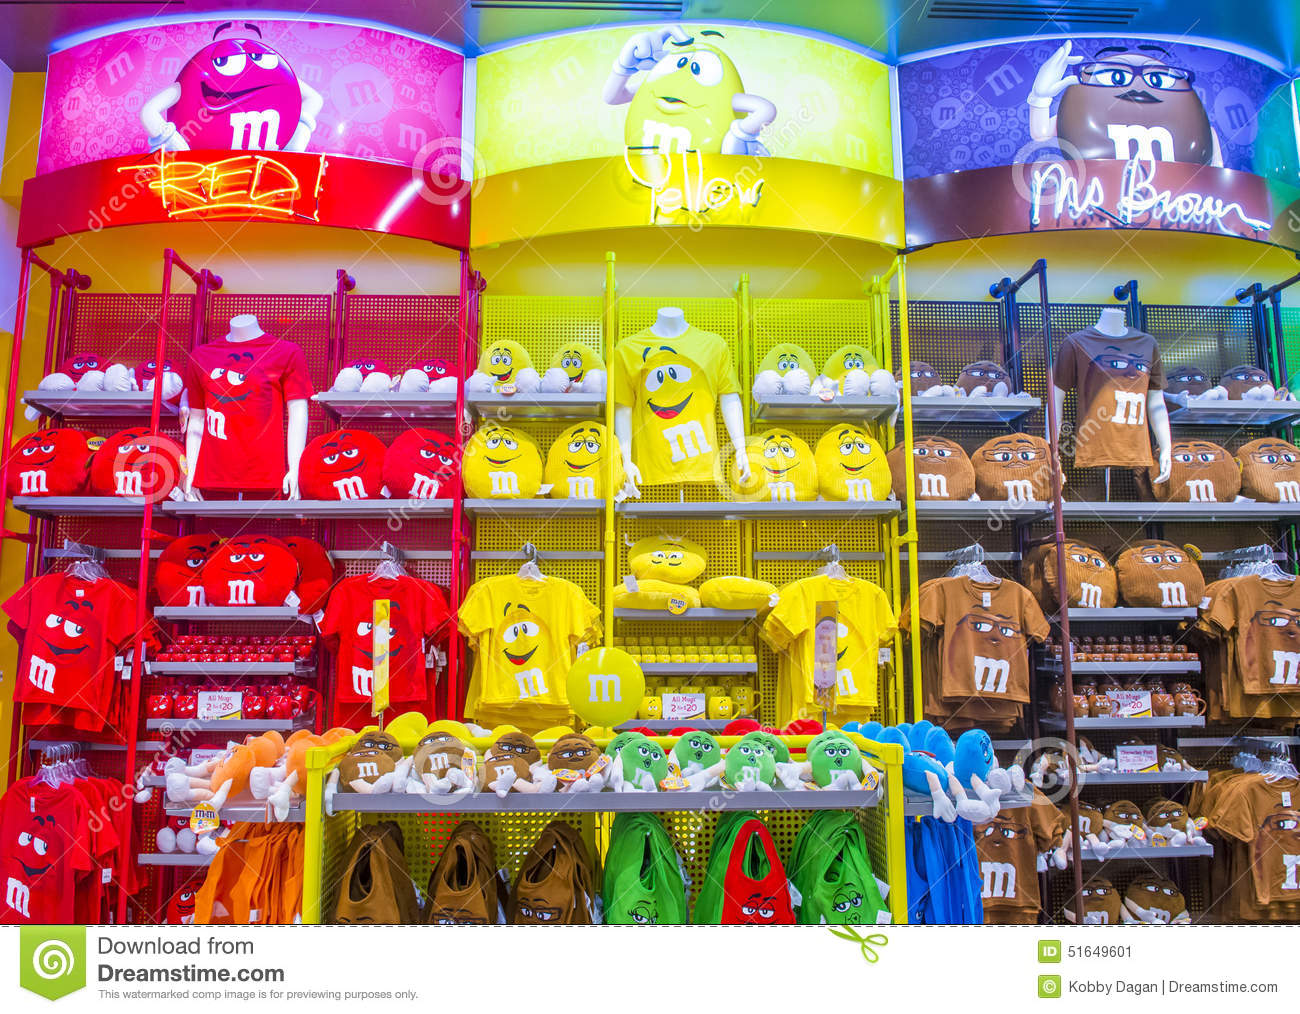 M&M World Las Vegas Editorial Photo - Image: 51649601